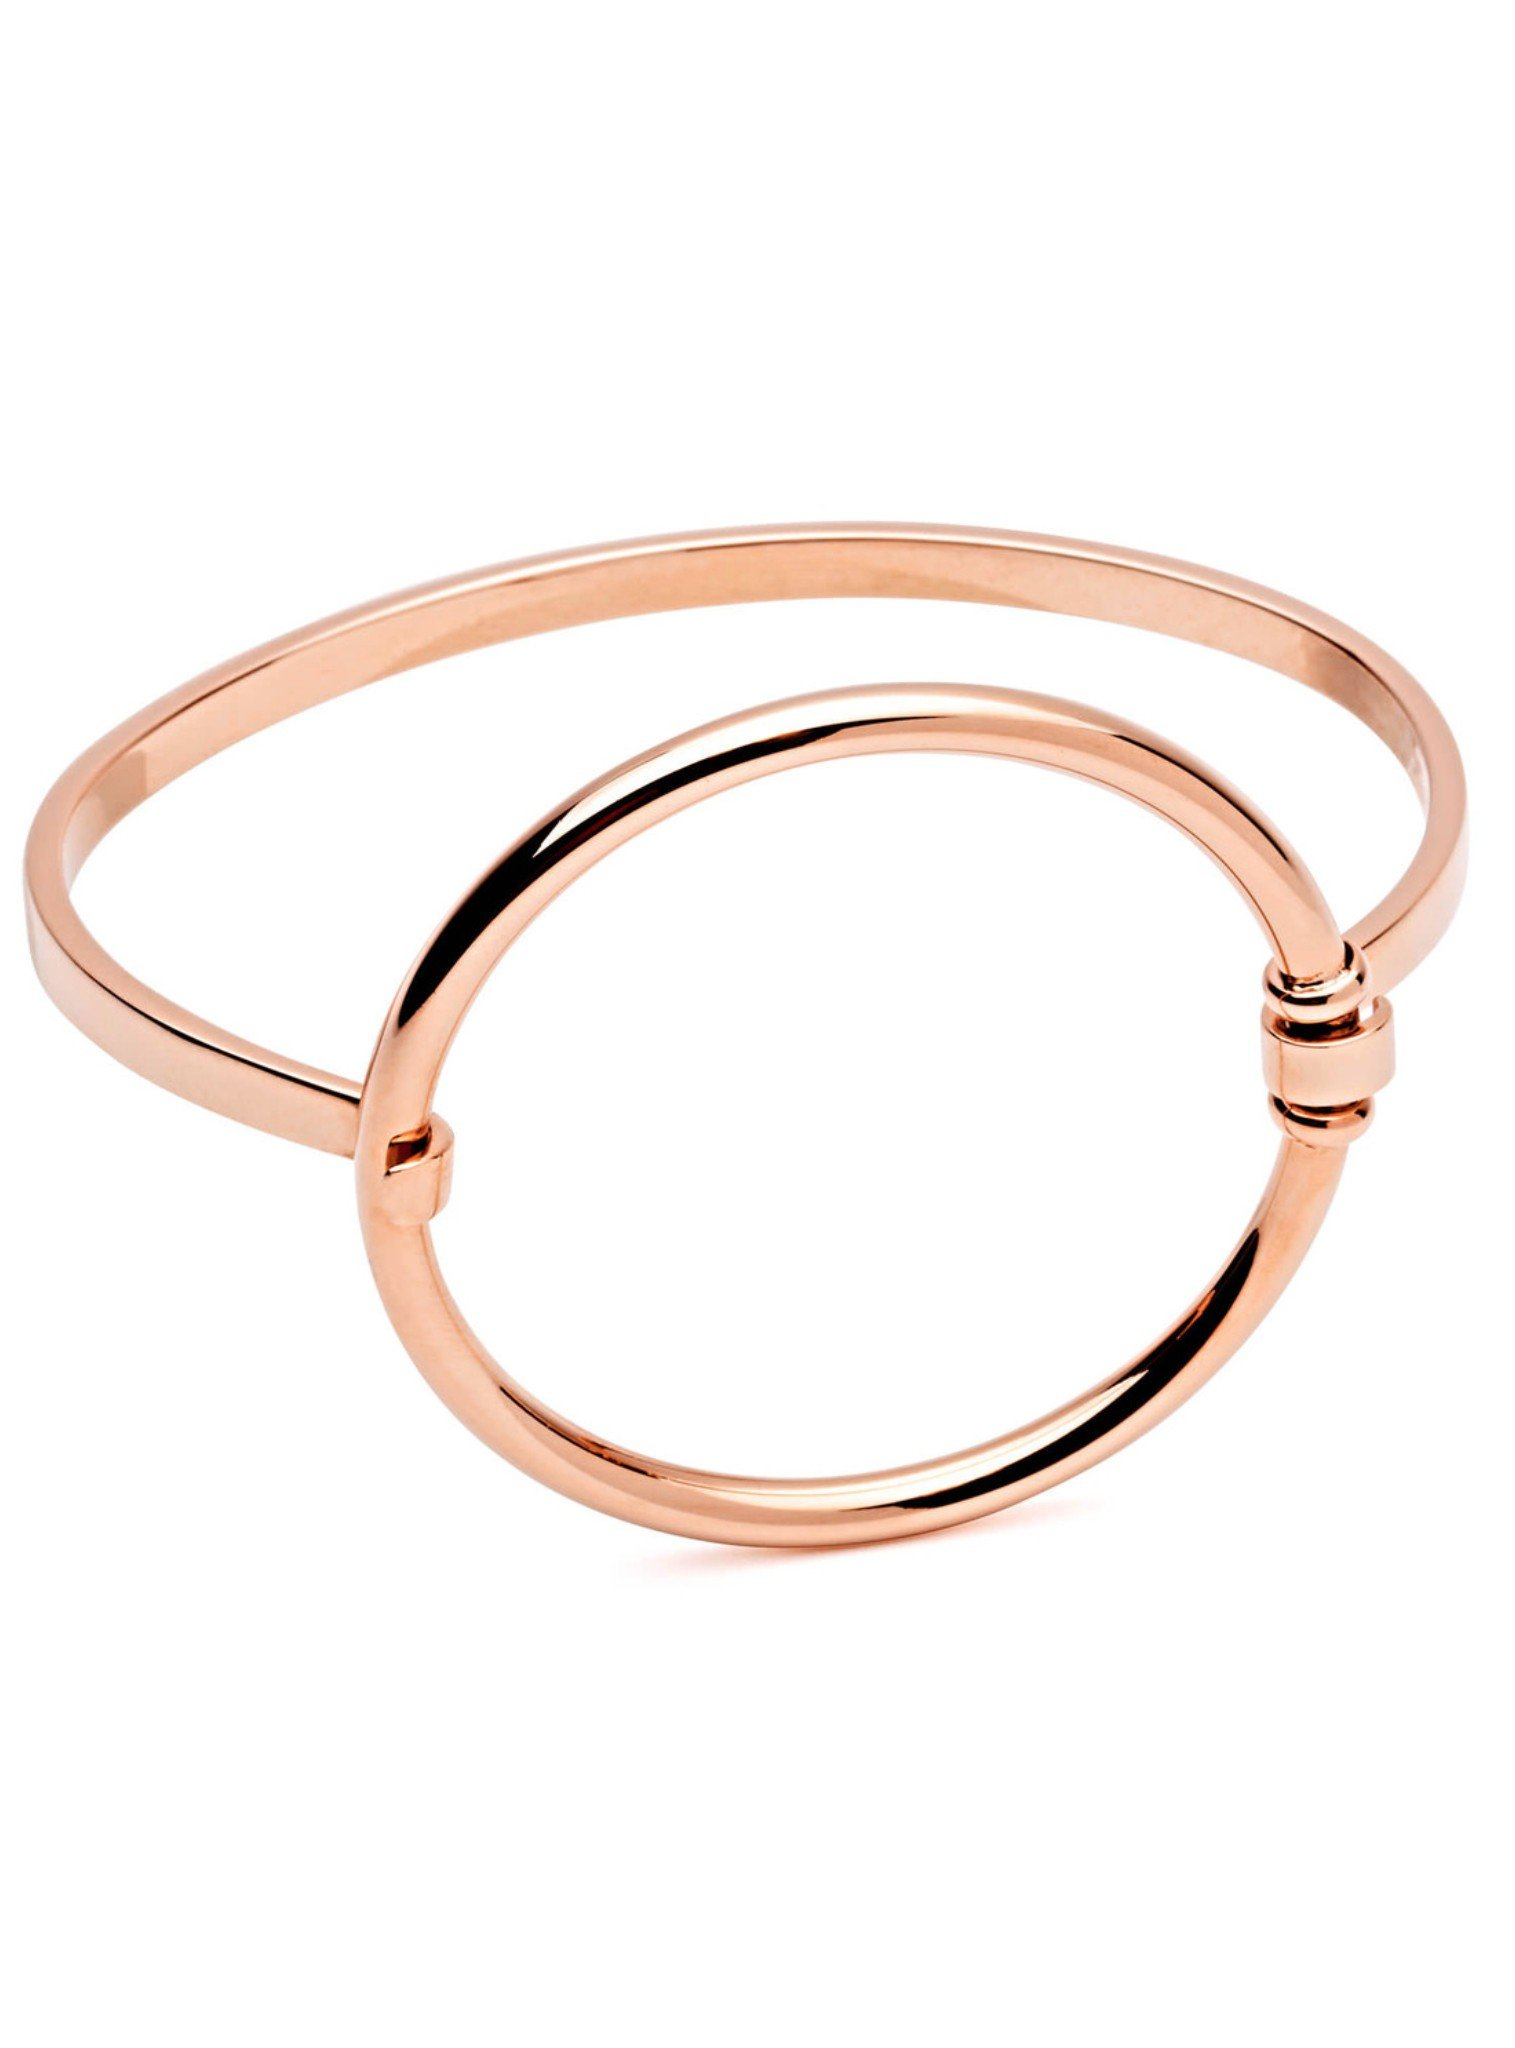 Daybreak Rose Gold Stainless Steel Bangle